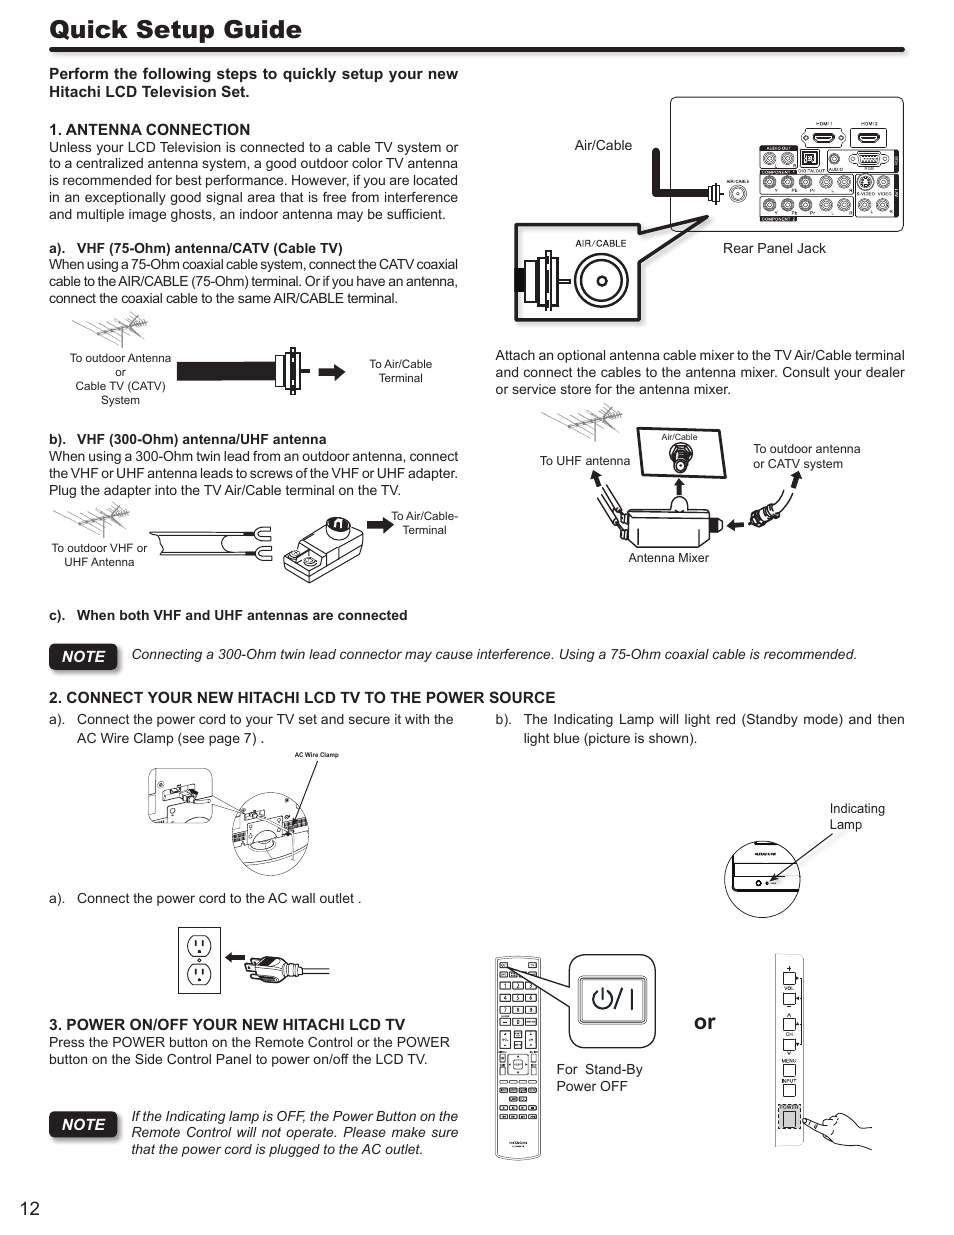 Quick Setup Guide Hitachi Ultravision L32s504 User Manual Page Cable Tv Wiring Services 12 60